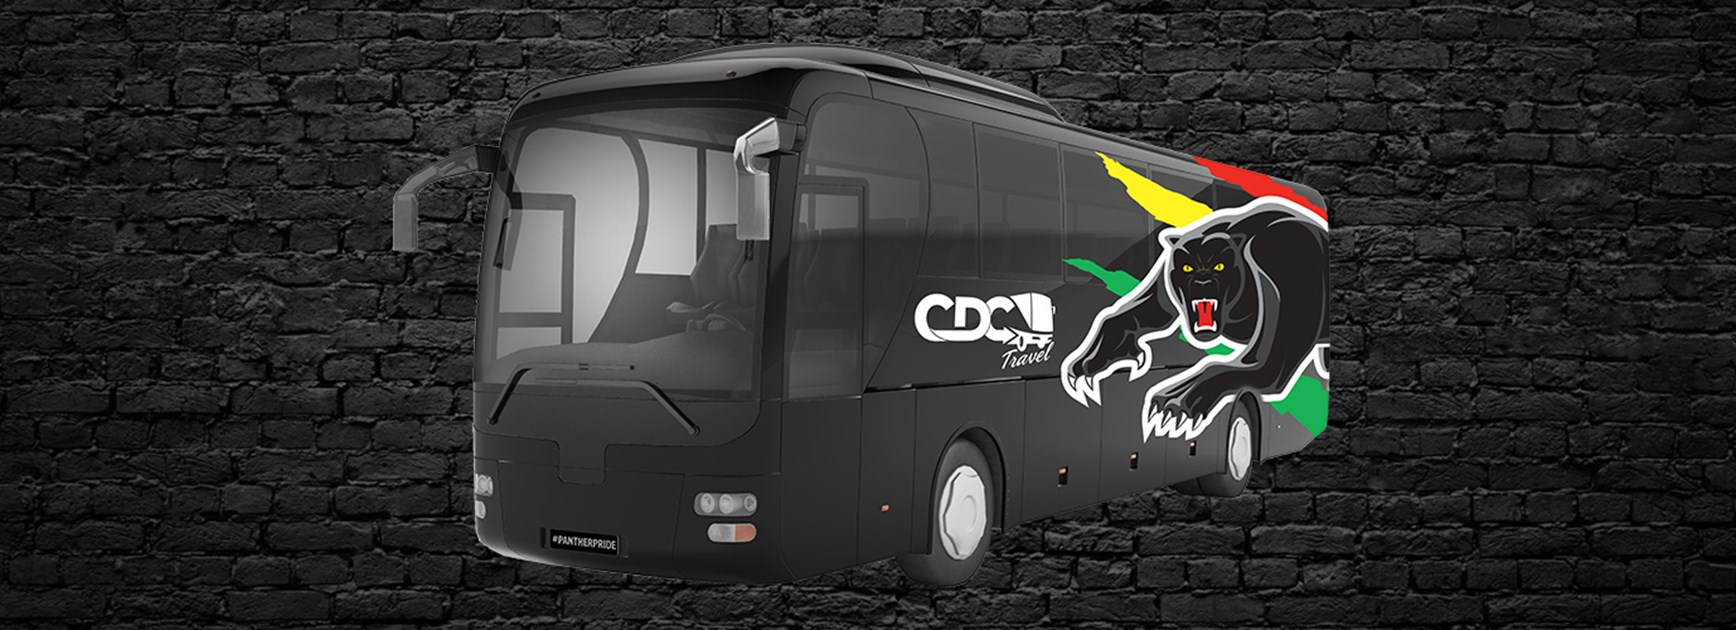 CDC Travel Panther Bus: Round 6